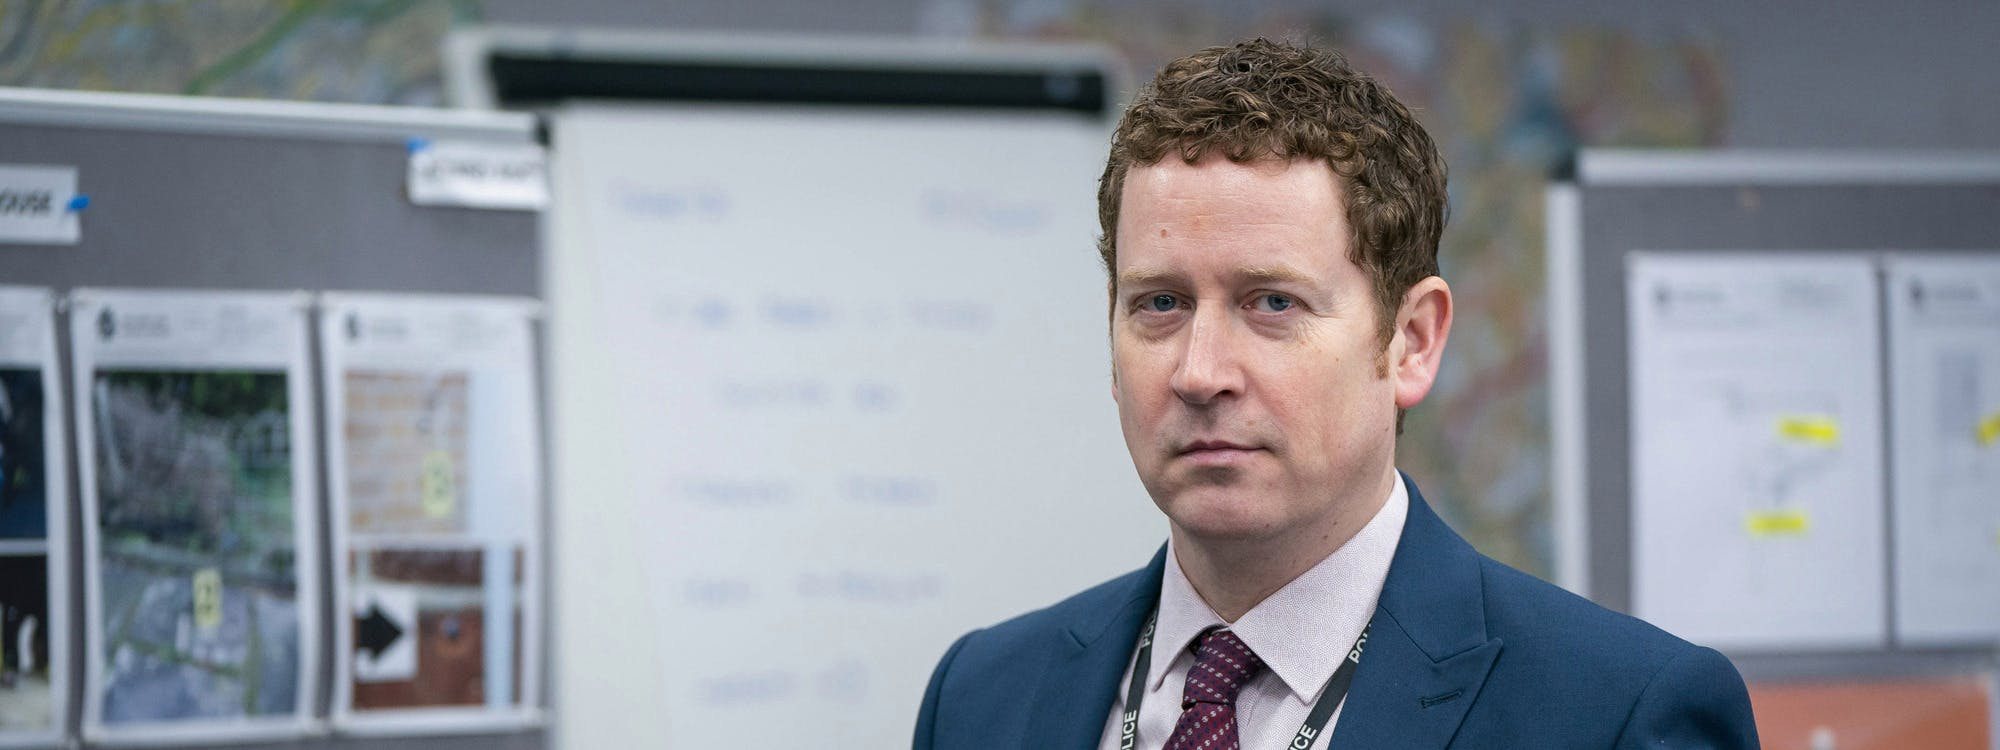 Image of Line of Duty actor Nigel Boyle in character as Ian Buckells, pictured from the chest up in the police station wearing a suit